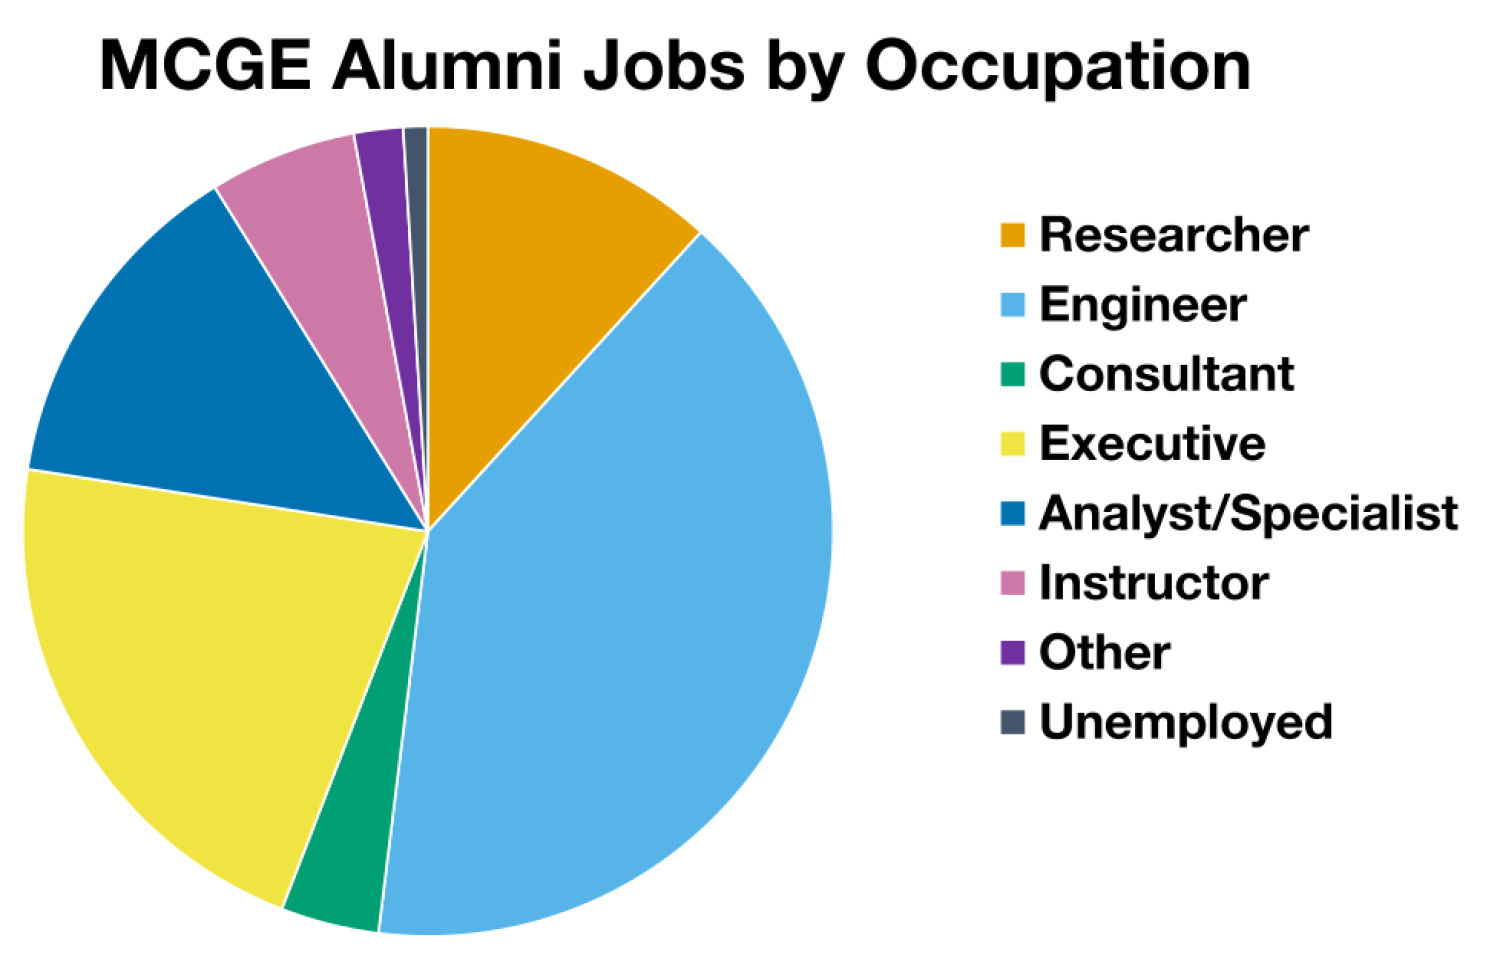 Pie chart showing alumni employment by occupation